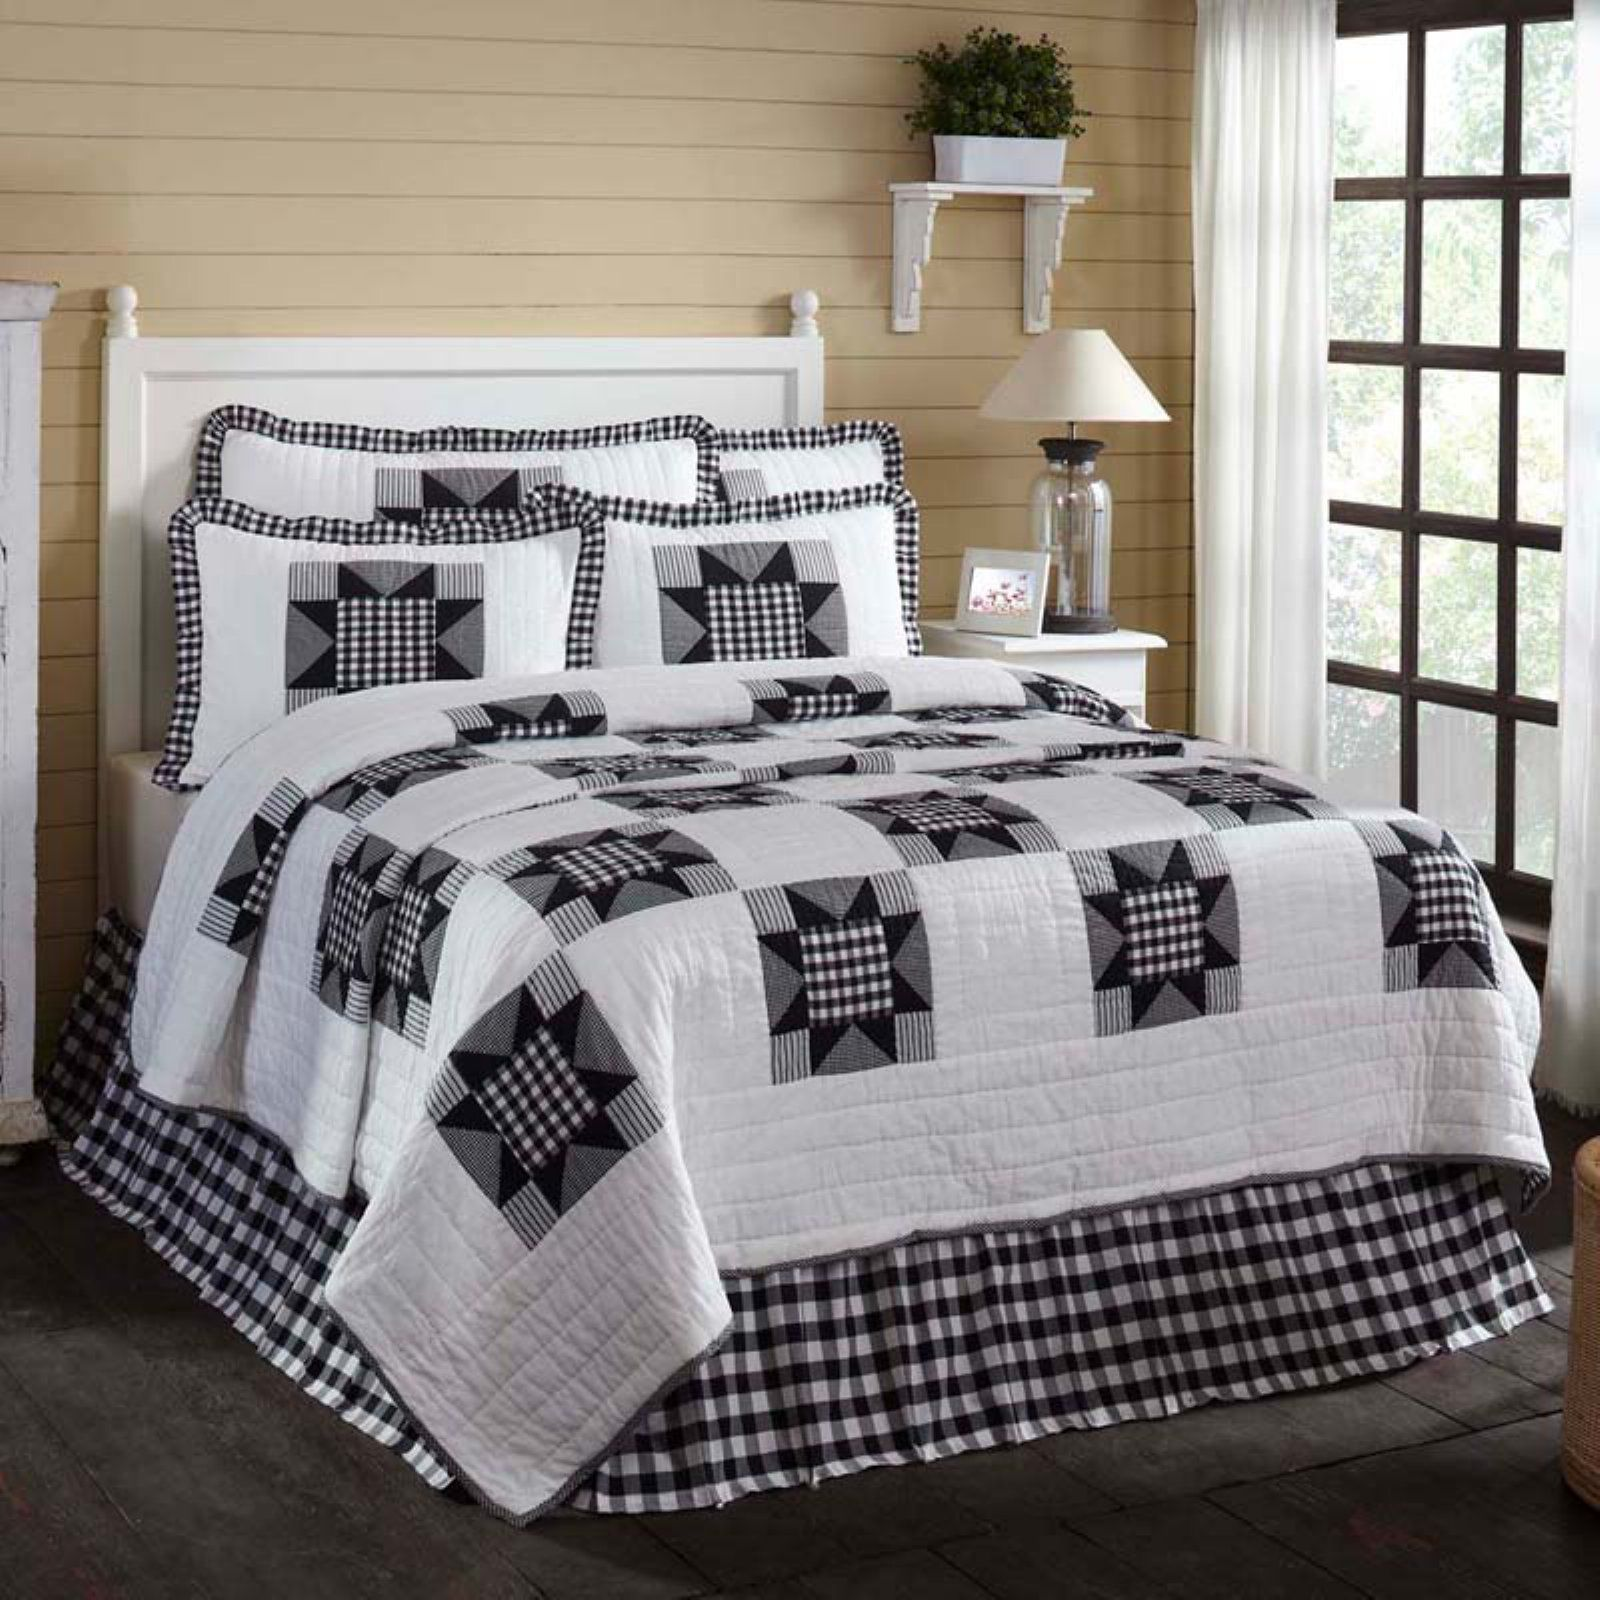 ANNIE BUFFALO BLACK CHECK Ruffled Twin Quilt Farmhouse Country VHC Brands